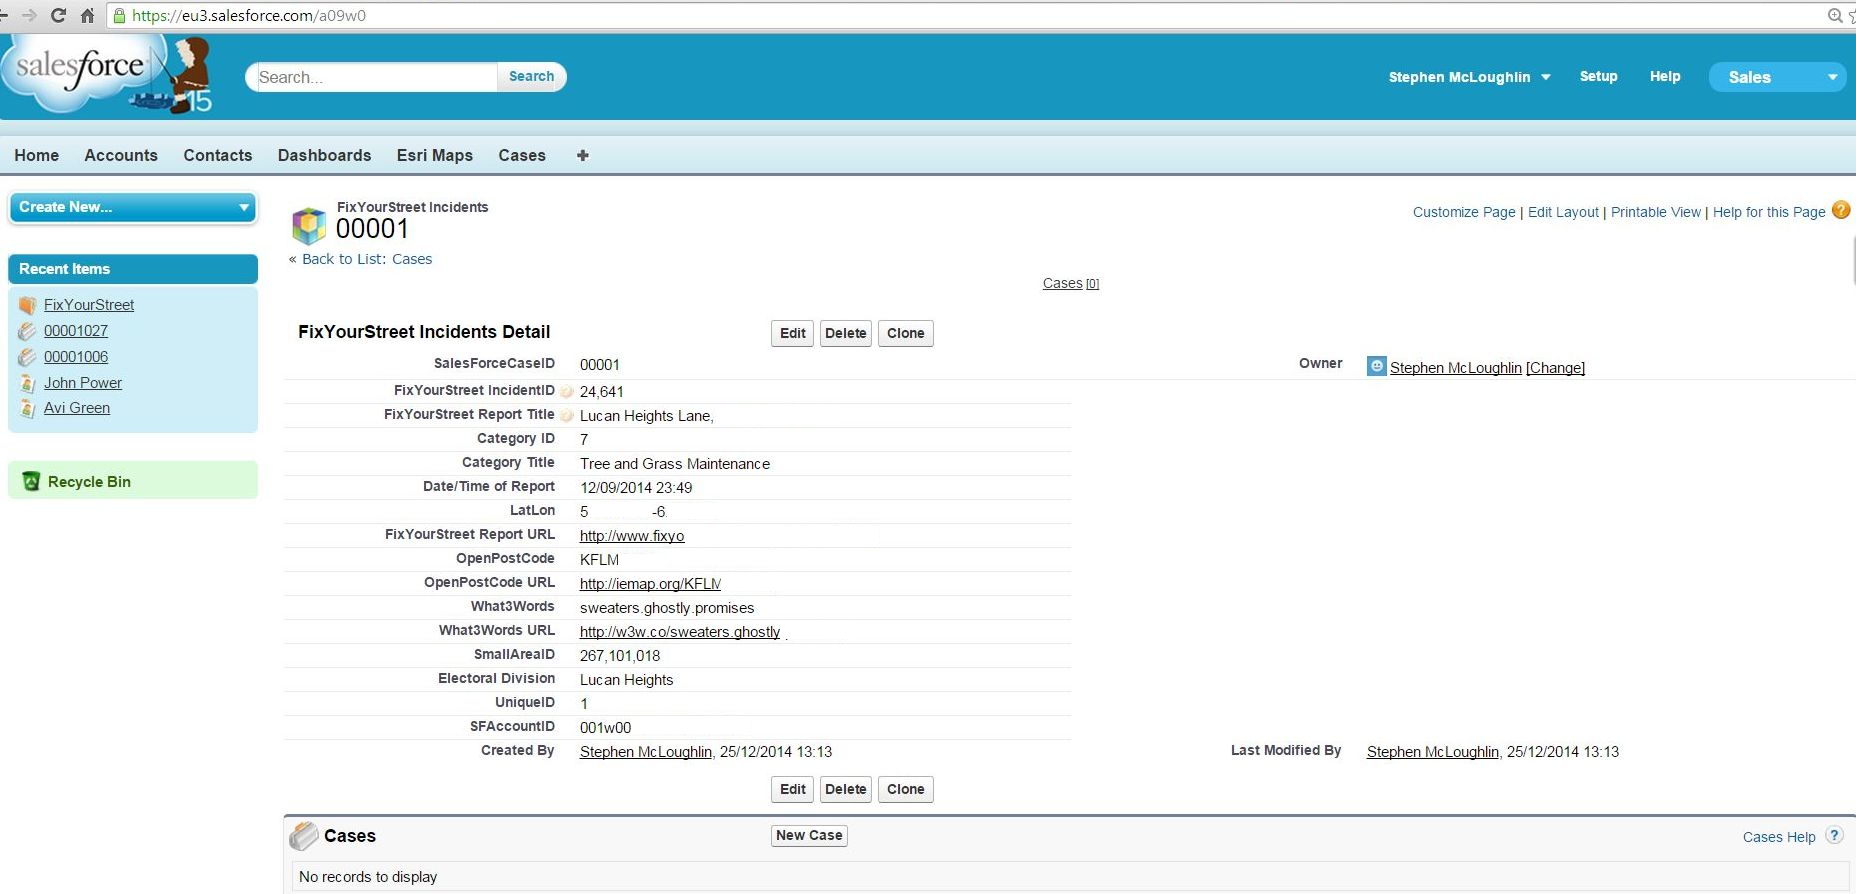 Imported incidents viewable in Salesforce using RecordID in URL